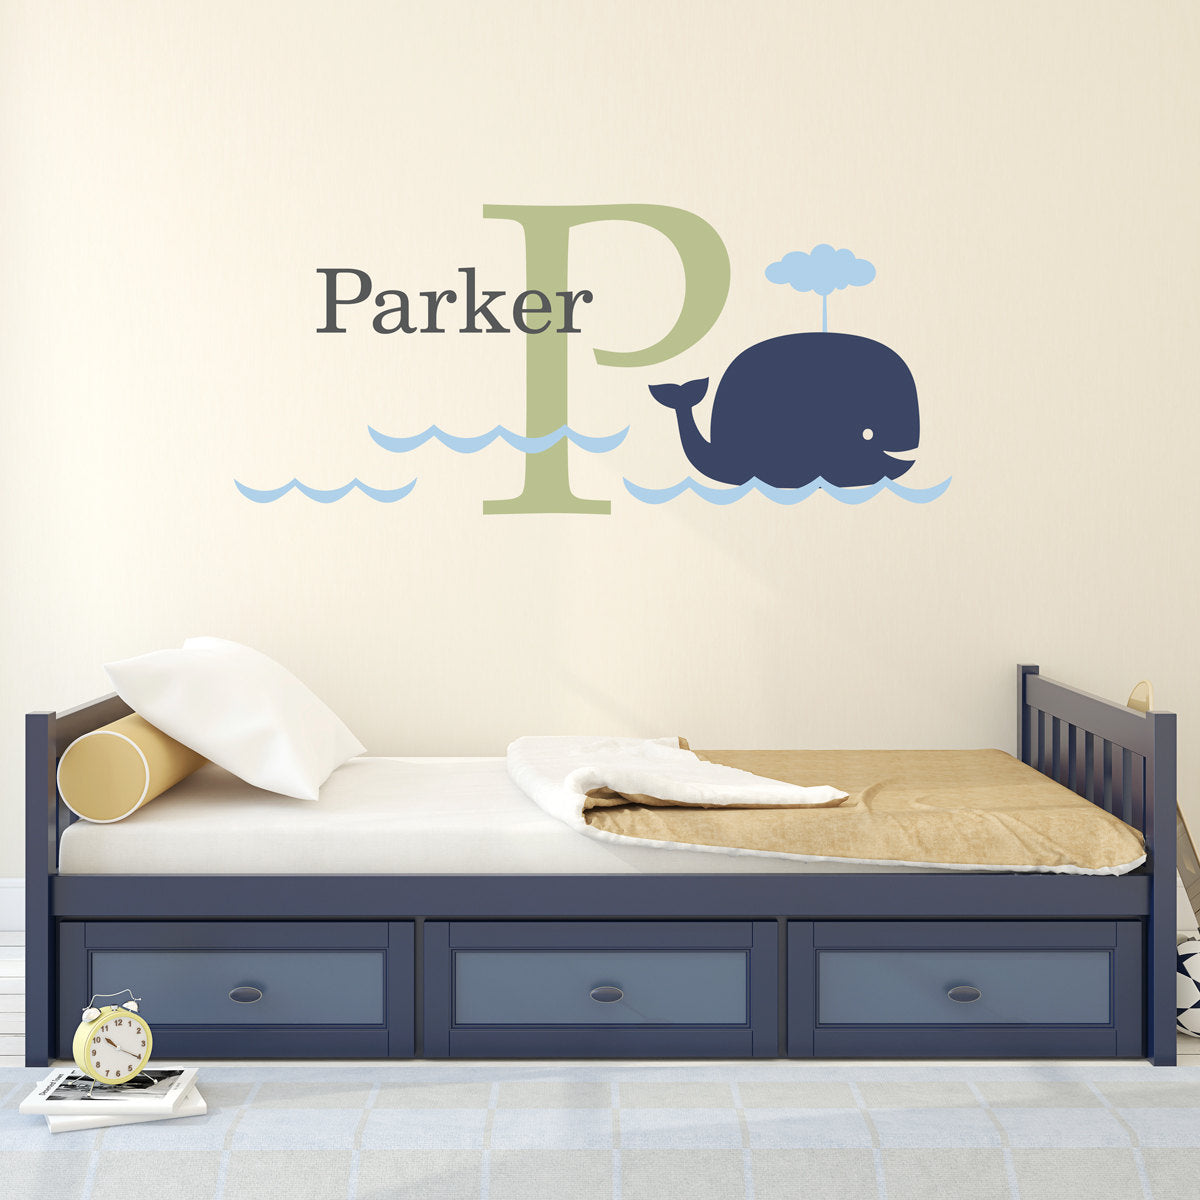 Personalized kids decals stephen edward graphics big whale initial name decal set kids wall decal whale wall sticker large amipublicfo Gallery